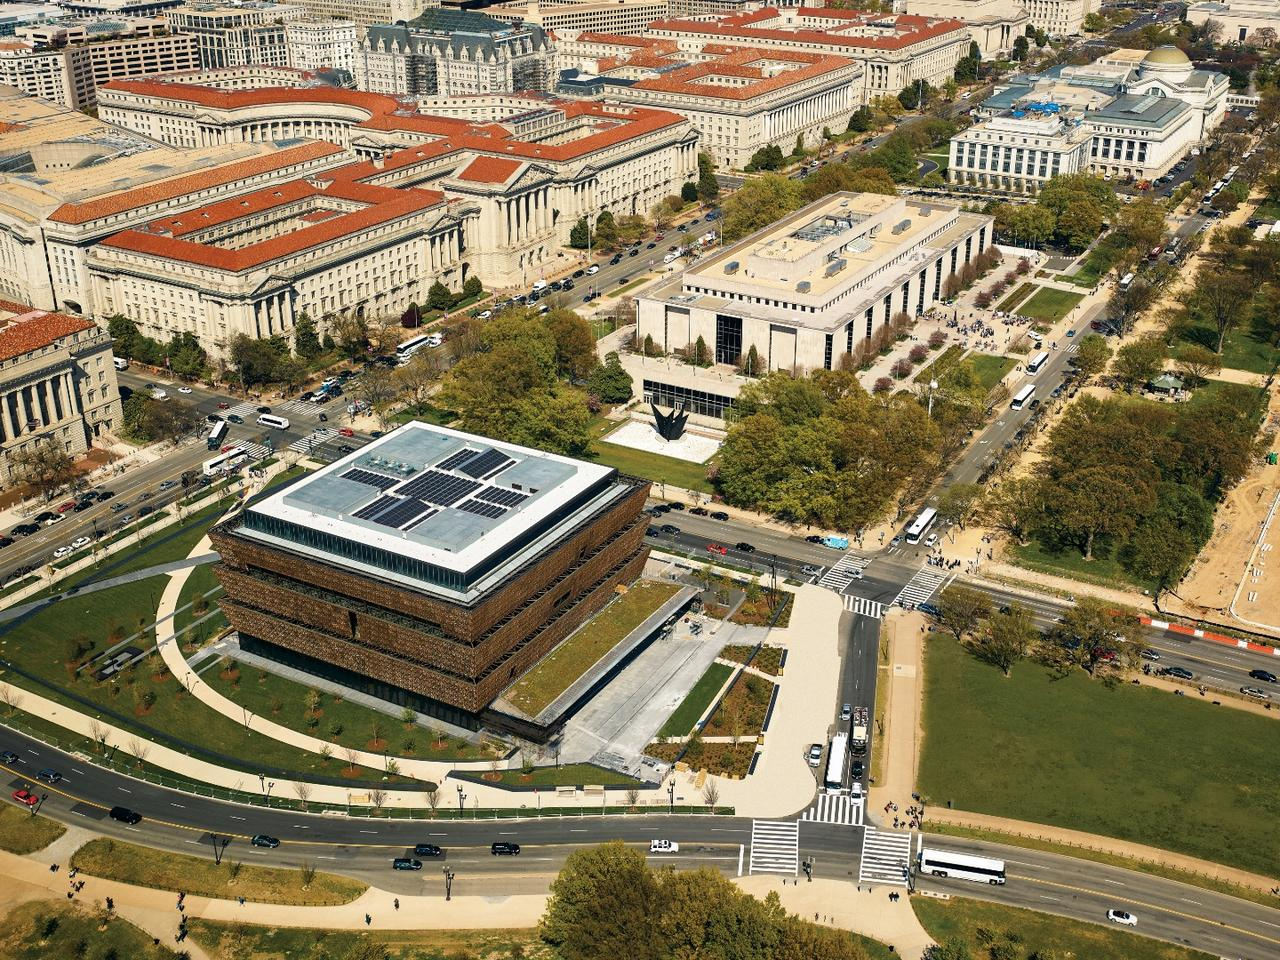 The National Museum of African American History and Culture was designed by Adjaye Associates alongside The Freelon Group, Davis Brody Bond, and SmithGroupJJR